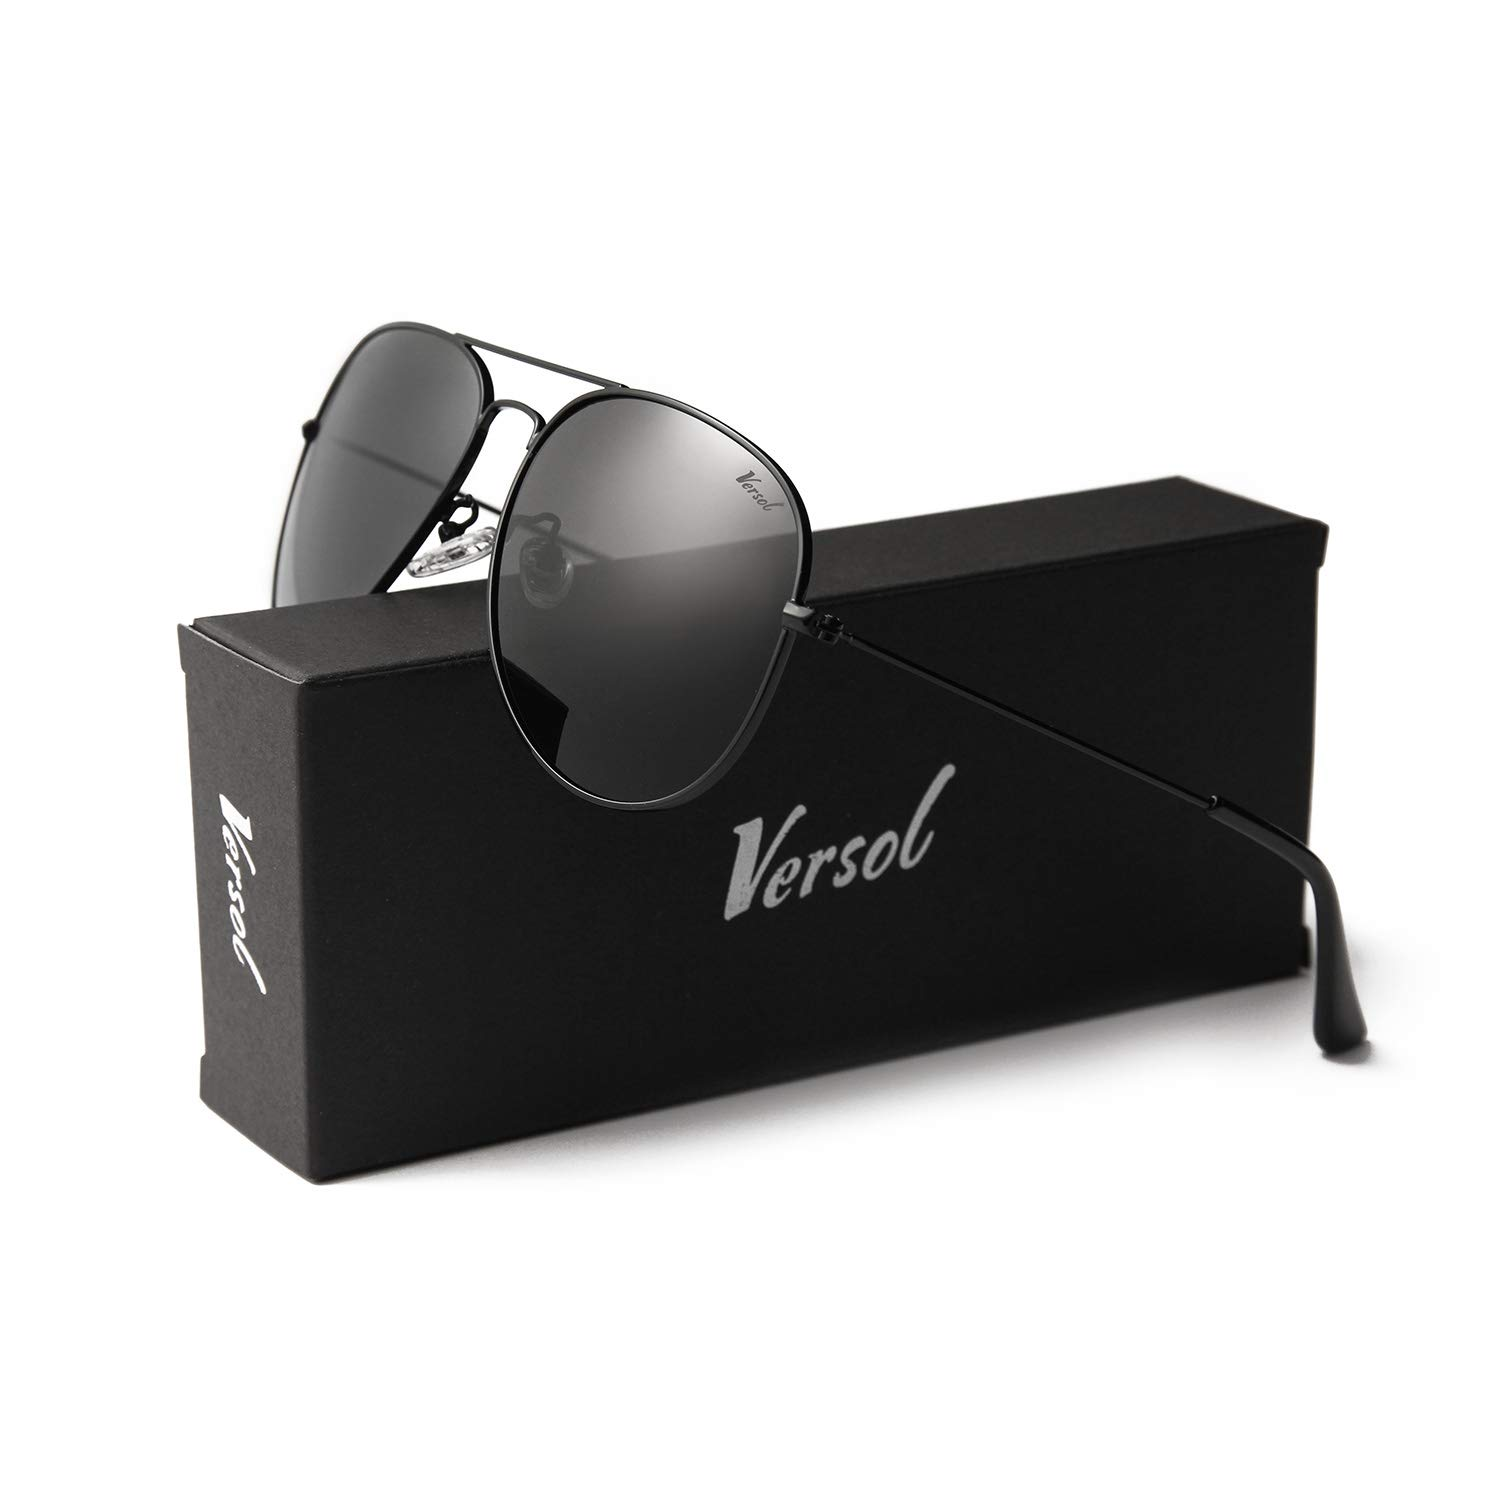 0b2a50ce212 Versol Aviator Sunglasses for Men Women Polarized Metal Frame and UV 400  Protection 60mm - Premium Classic Style (Black Lens + Black) at Amazon Men s  ...